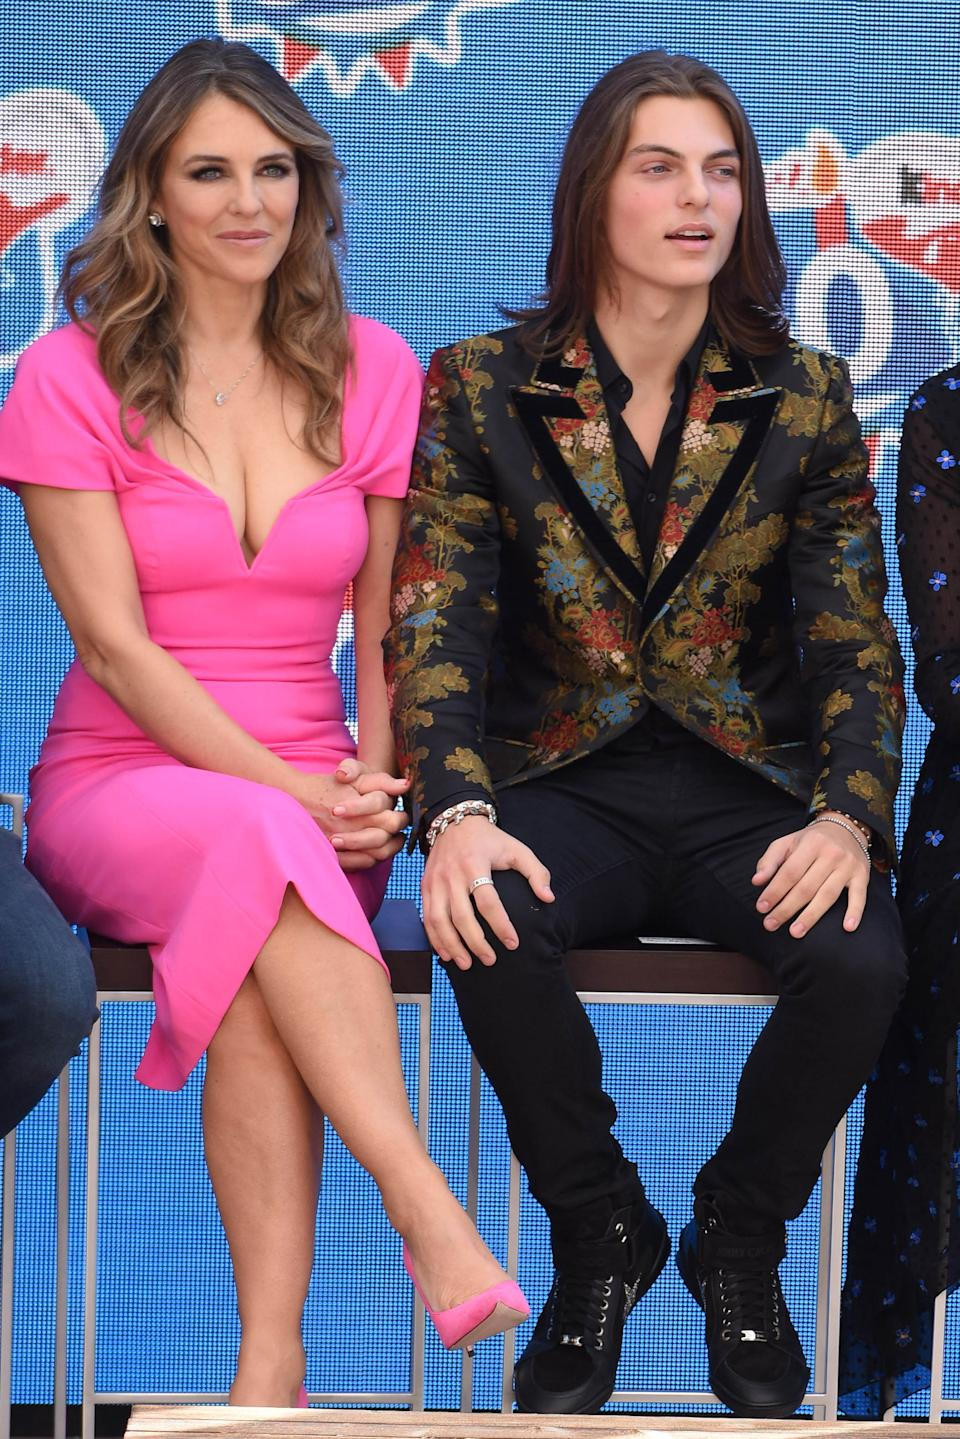 UK actress Elizabeth Hurley and her son Damian Hurley during the 50th anniversary celebration of the brand Kinder at Heidepark on October 14, 2018 in Soltau, Germany